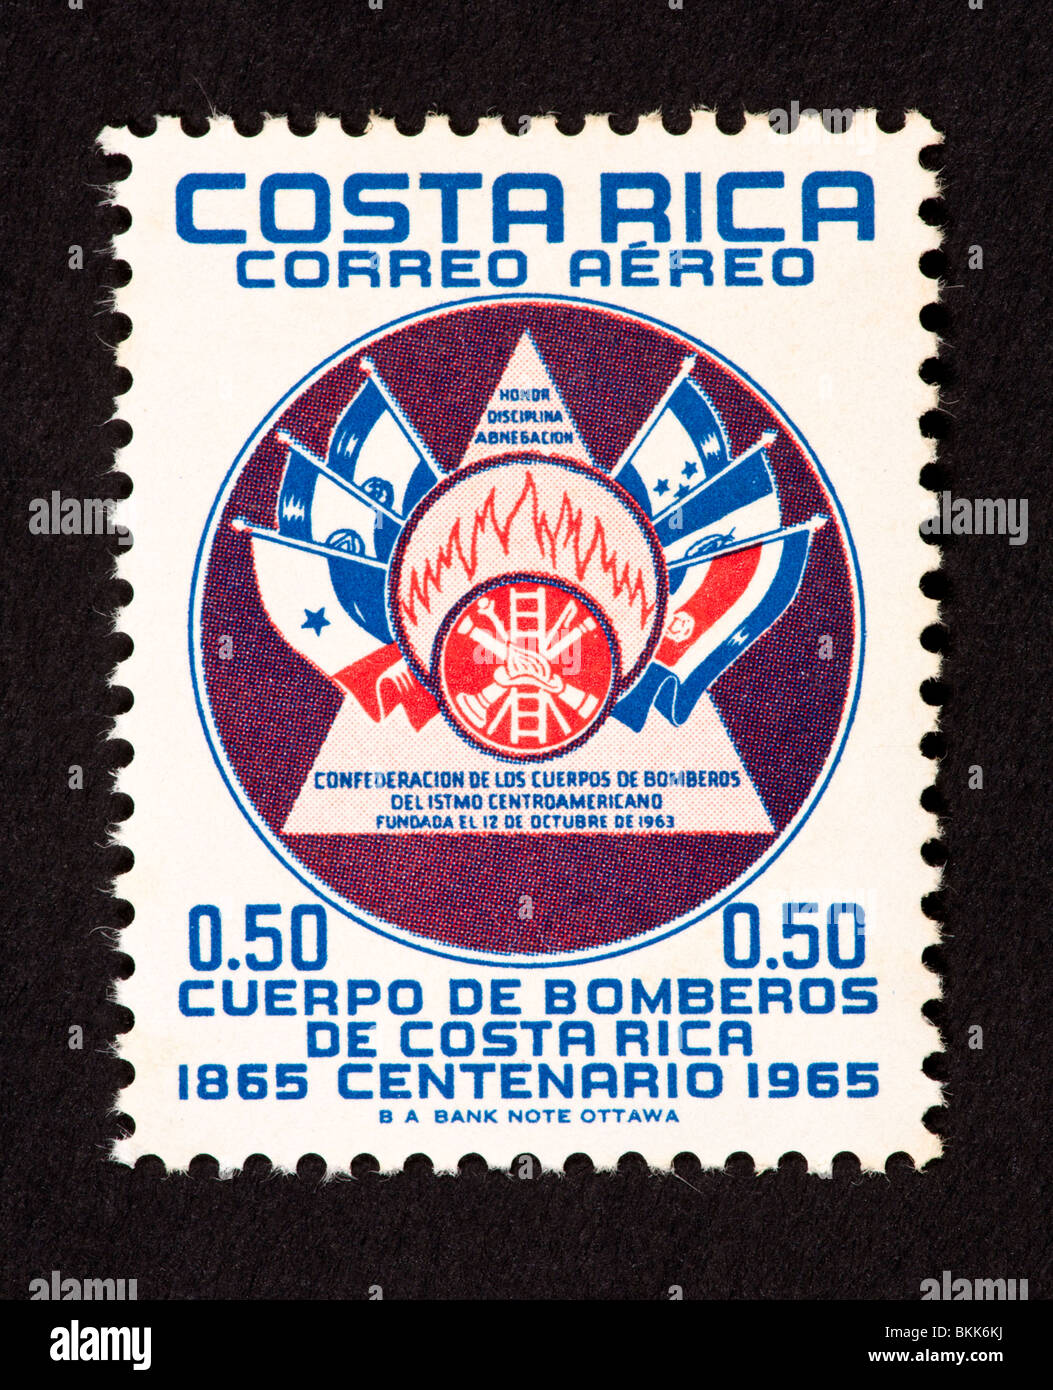 f7d807c9f0c8 Postage stamp from Costa Rica depicting the emblem and flags of the  Confederation of the Central American Fire Brigade